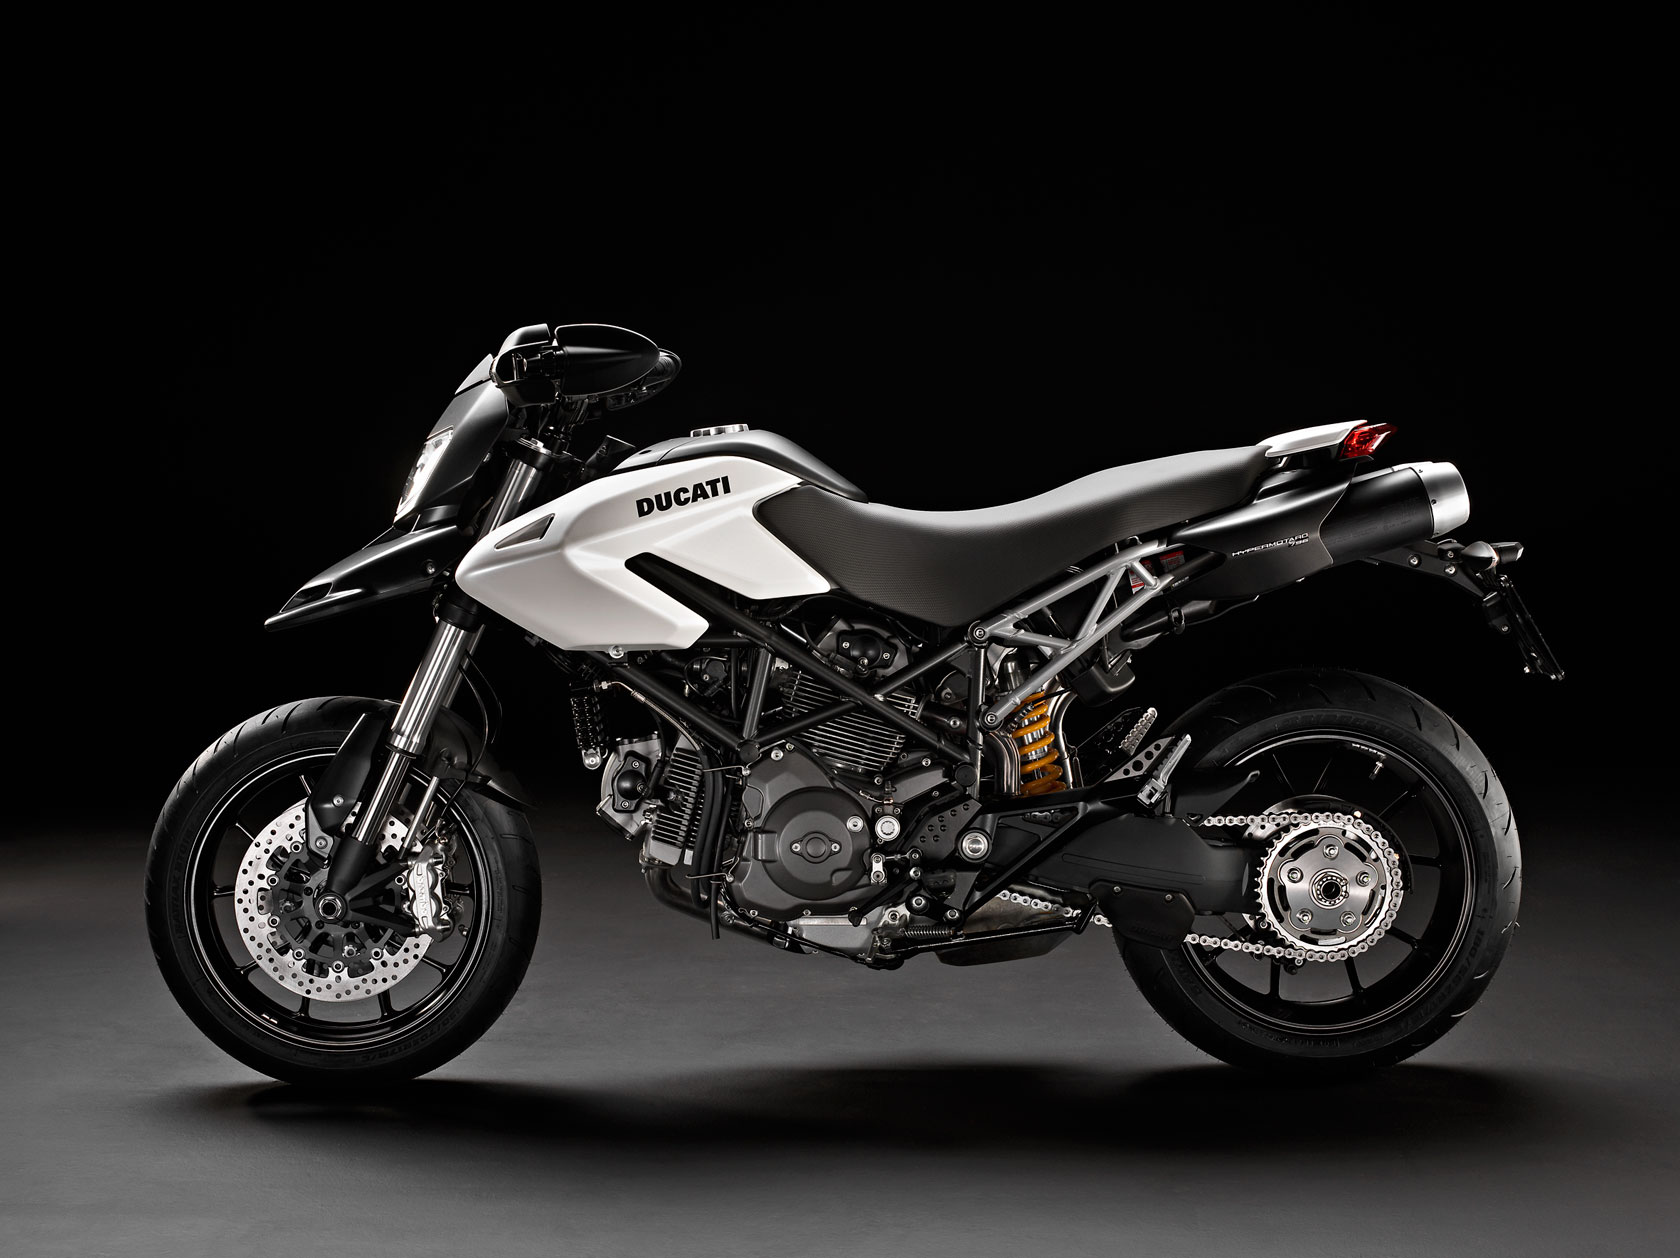 Ducati Hypermotard 796 2011 images #79580